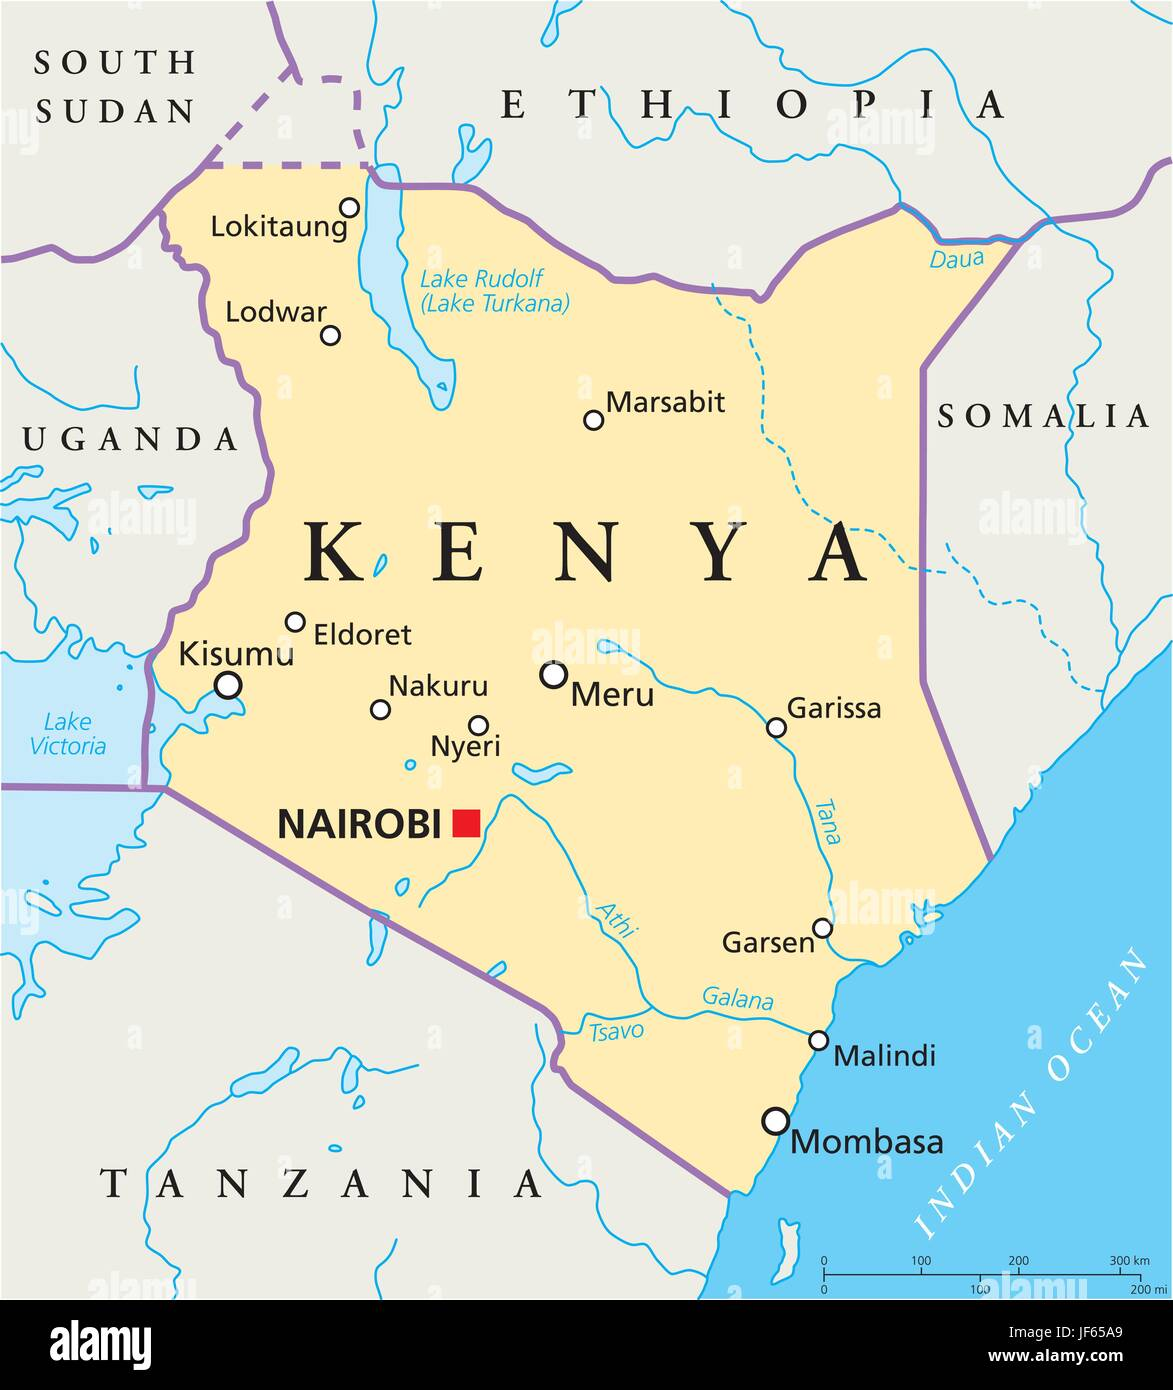 Kenya Map Stockfotos & Kenya Map Bilder - Alamy